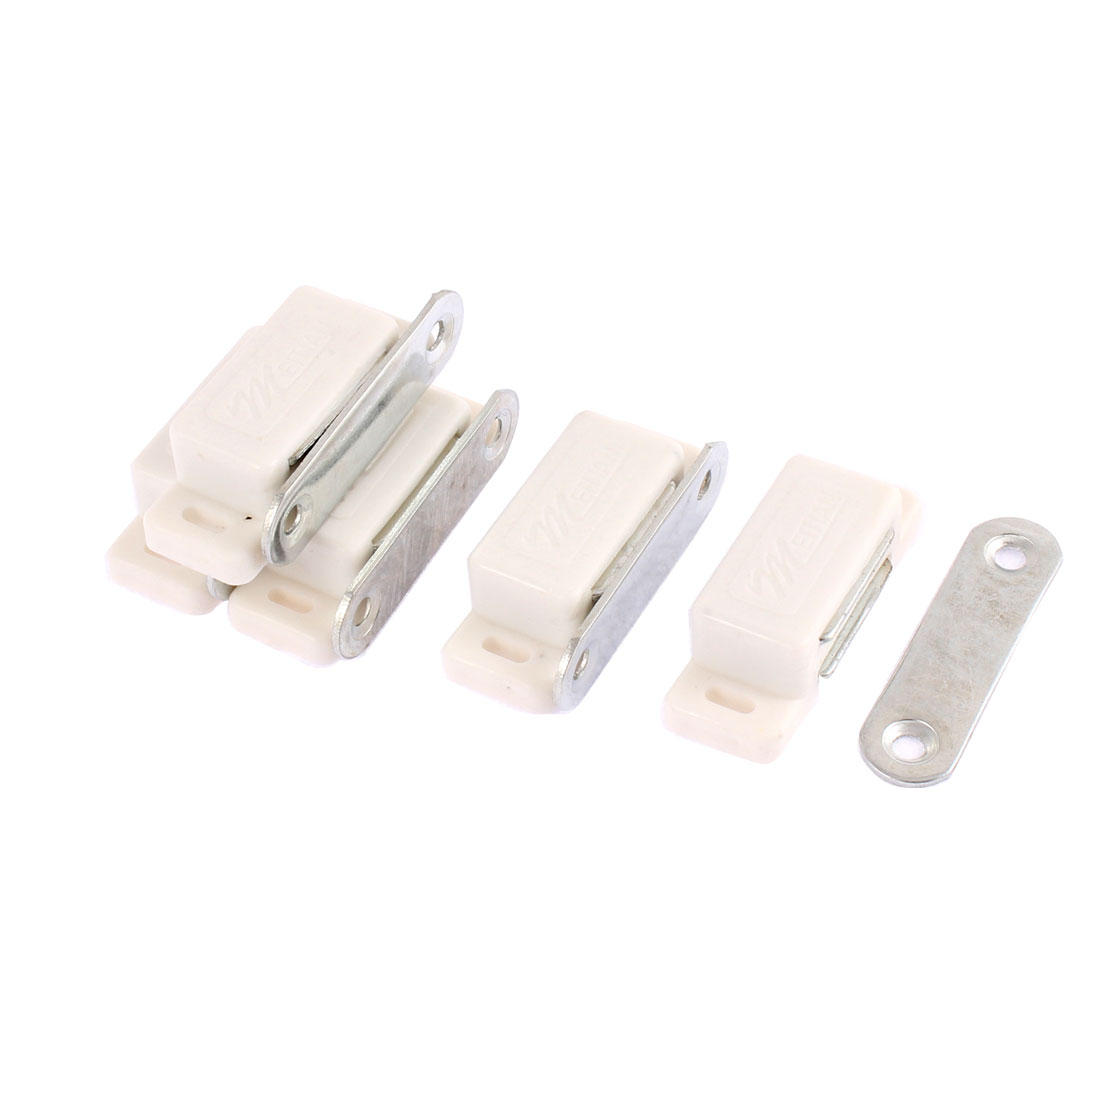 5 Pcs Wardrobe Cabinet Furniture Magnetic Catch Door Latch 46mm x 18mm White